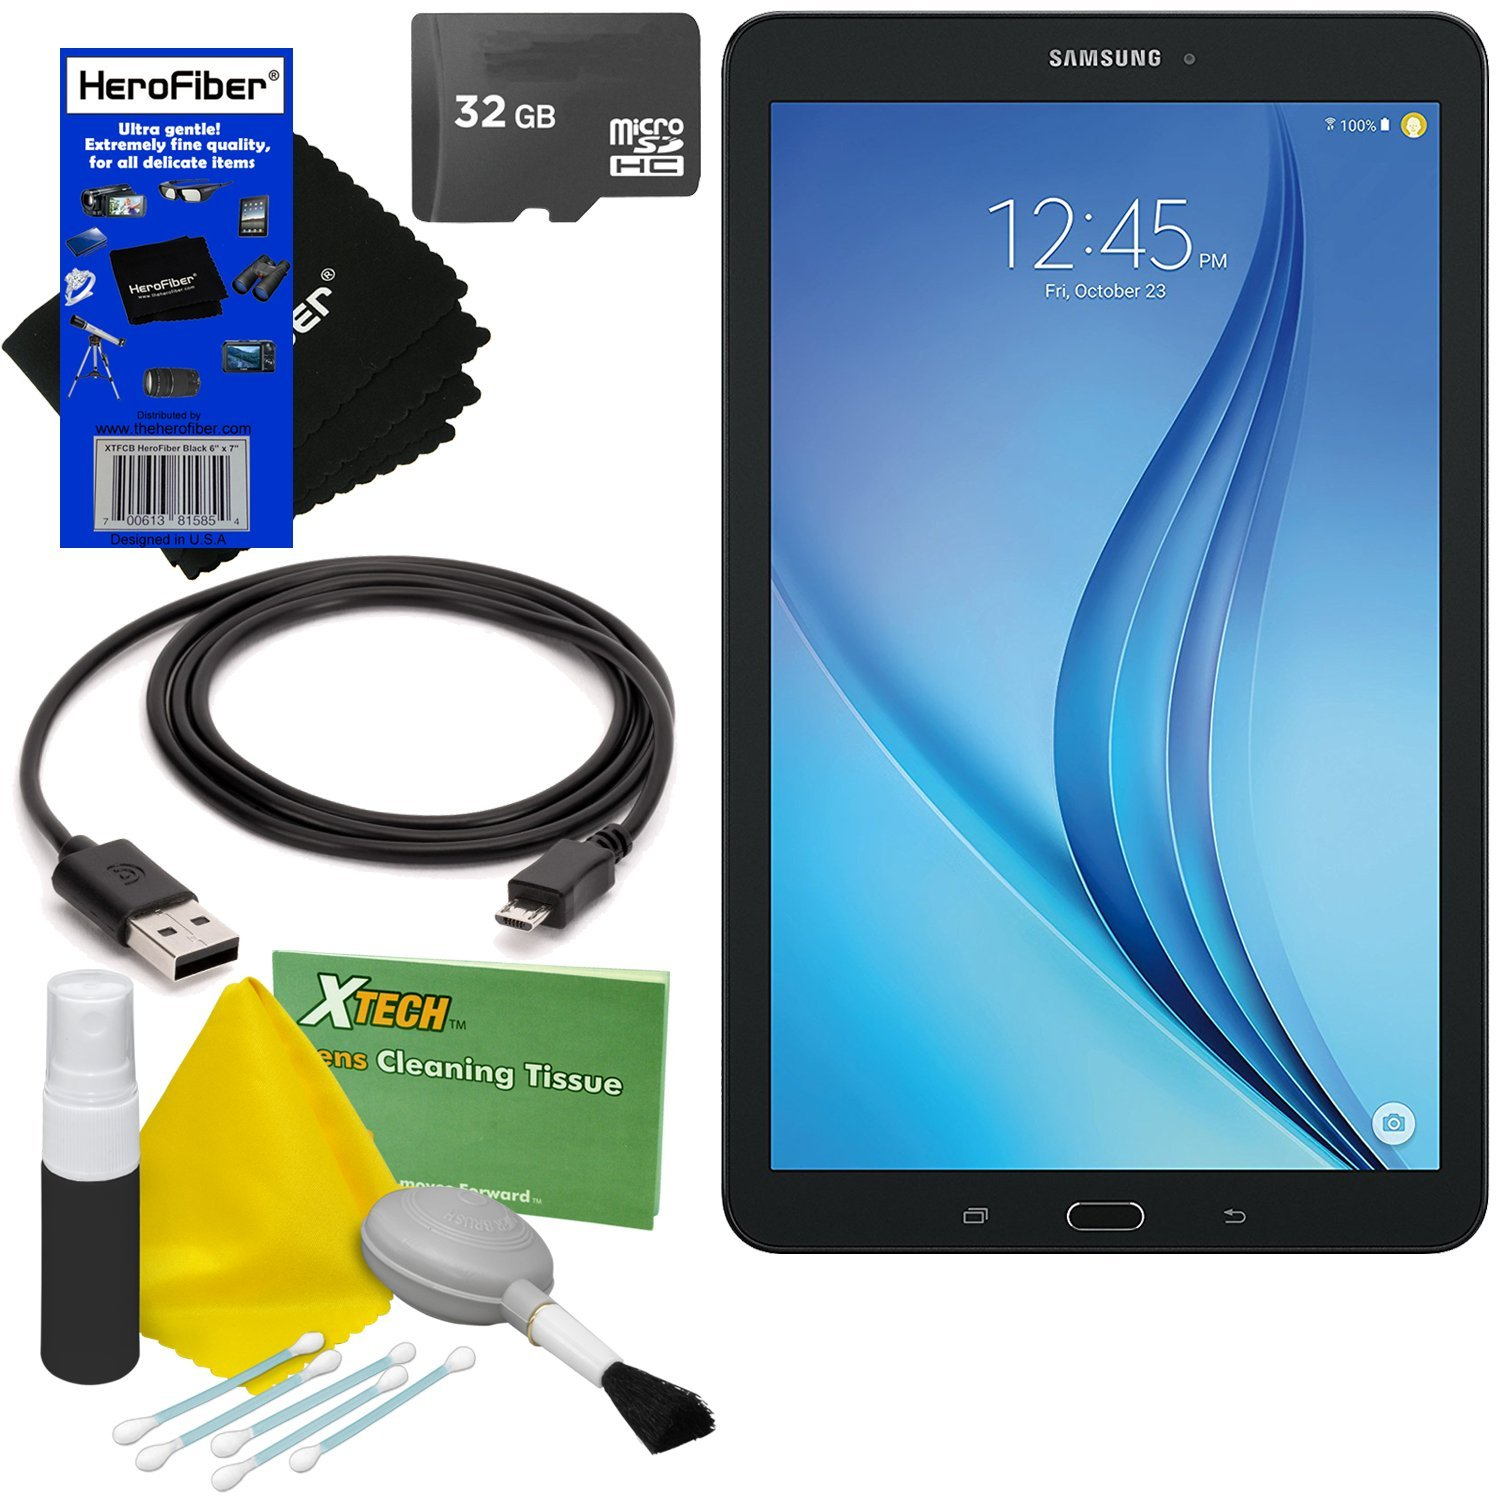 Samsung Galaxy Tab E 9.6'' 16GB Wi-Fi Tablet (Black) SM-T560NZKUXAR + 32GB MicroSD High Capacity Memory Card + USB Cable + 5pc Deluxe Cleaning Kit + HeroFiber Ultra Gentle Cleaning Cloth